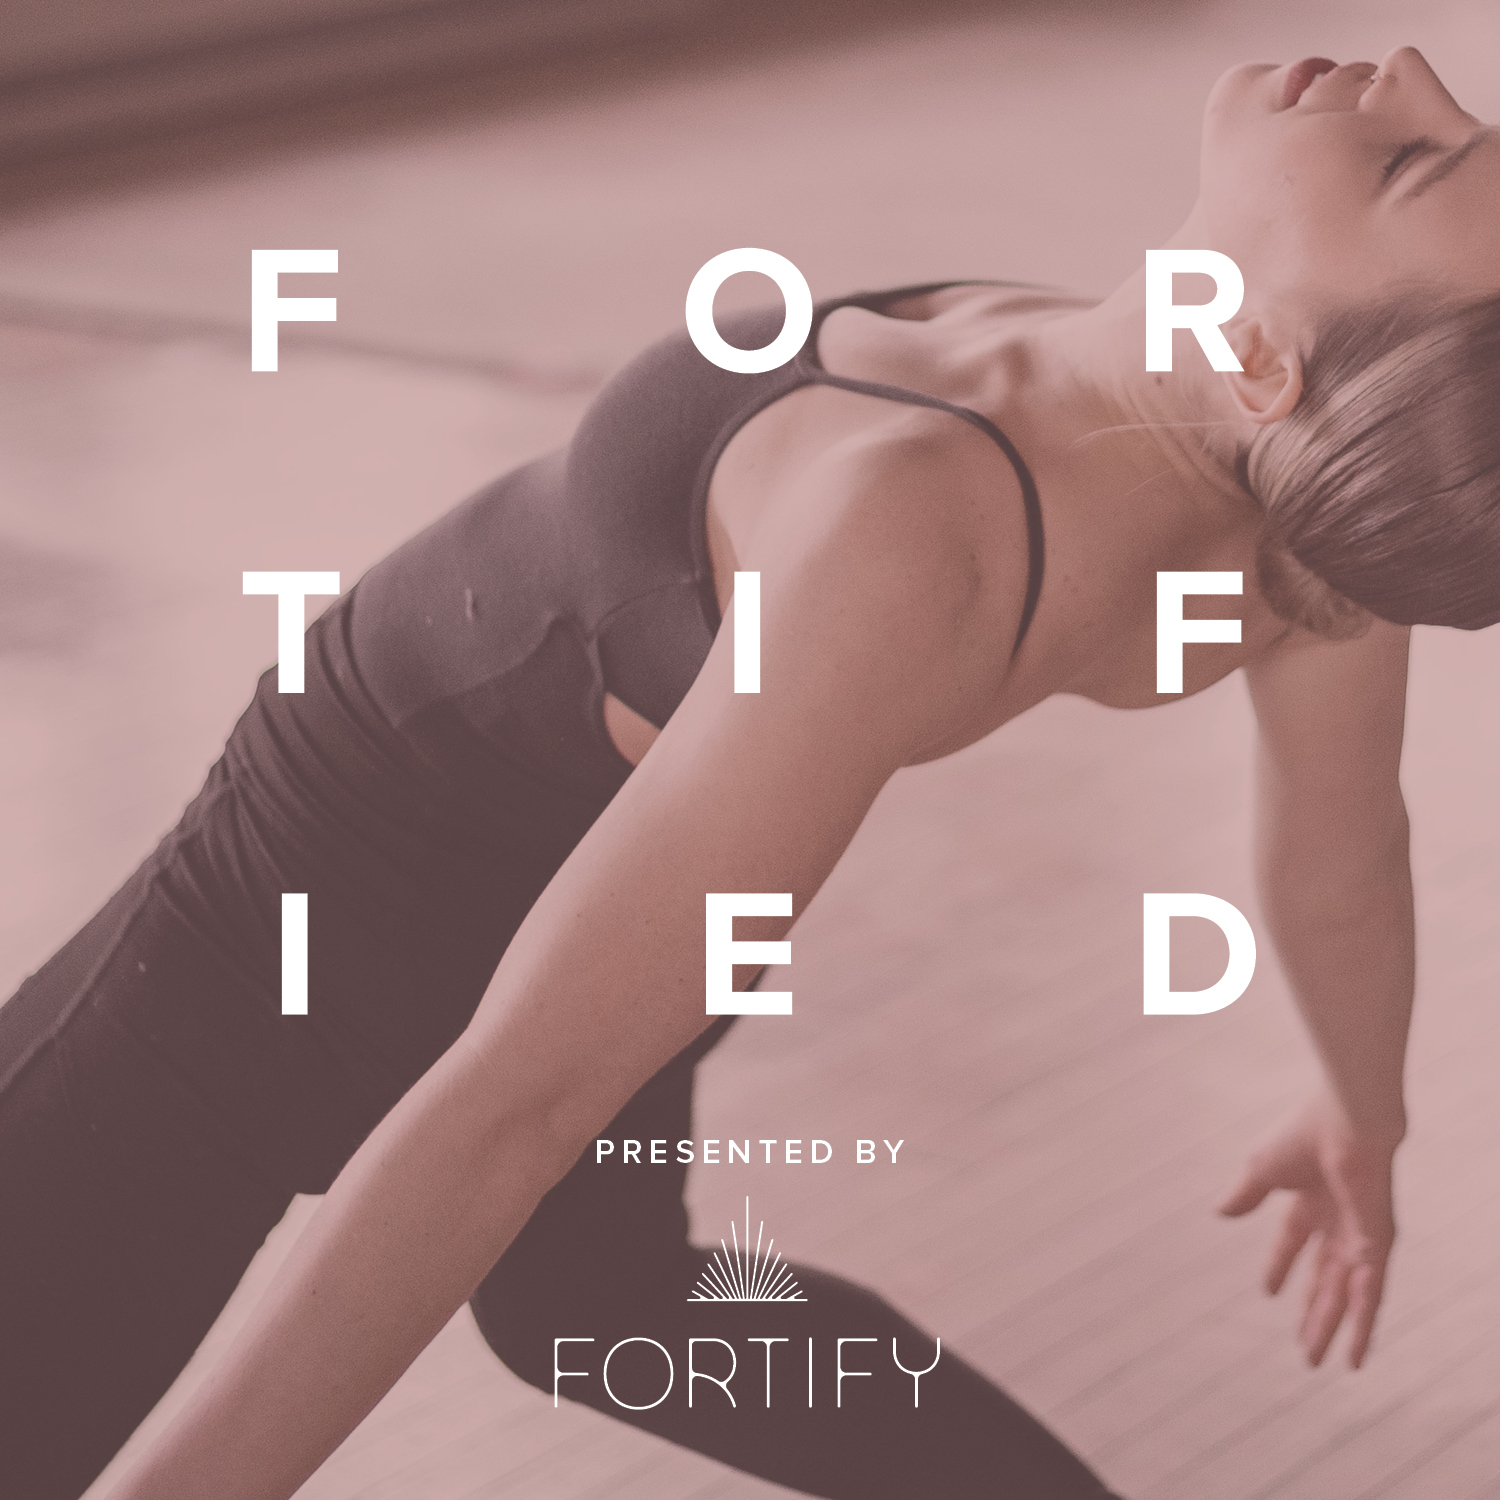 Fortify Event on May 24th, 2019 - Winnipeg, Manitoba